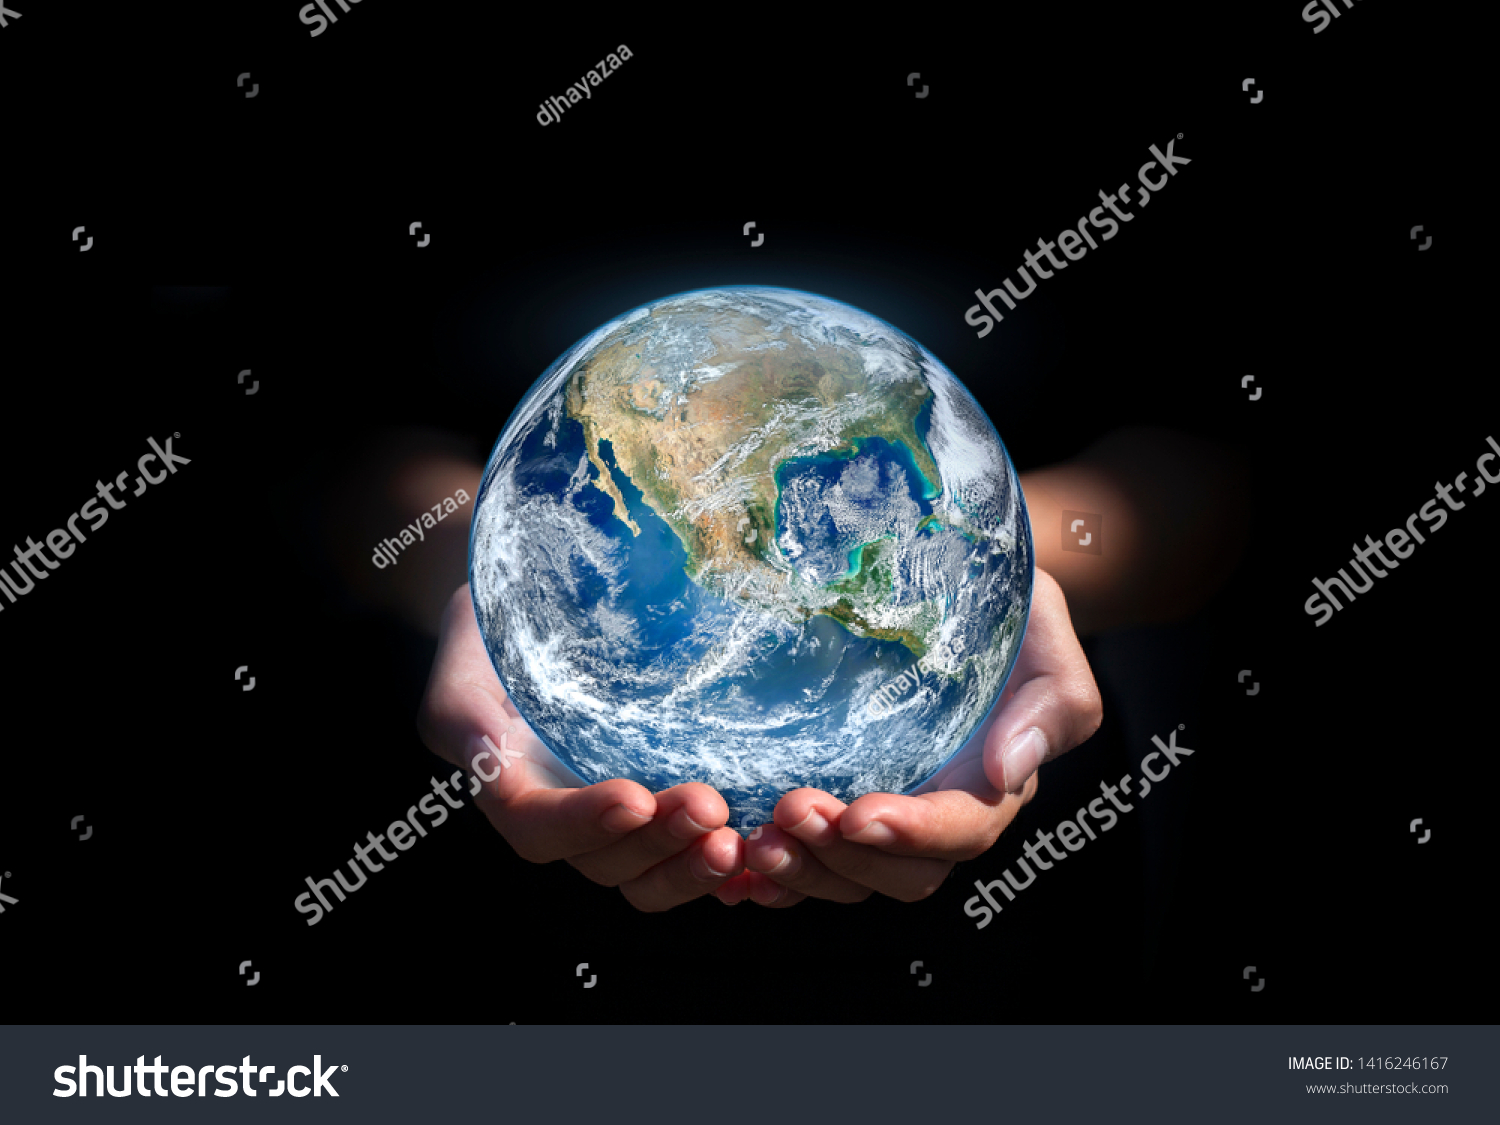 earth in hands. green planet on hand. save of earth. environment concept for background web or world guardian organization.Elements of this image furnished by NASA #1416246167